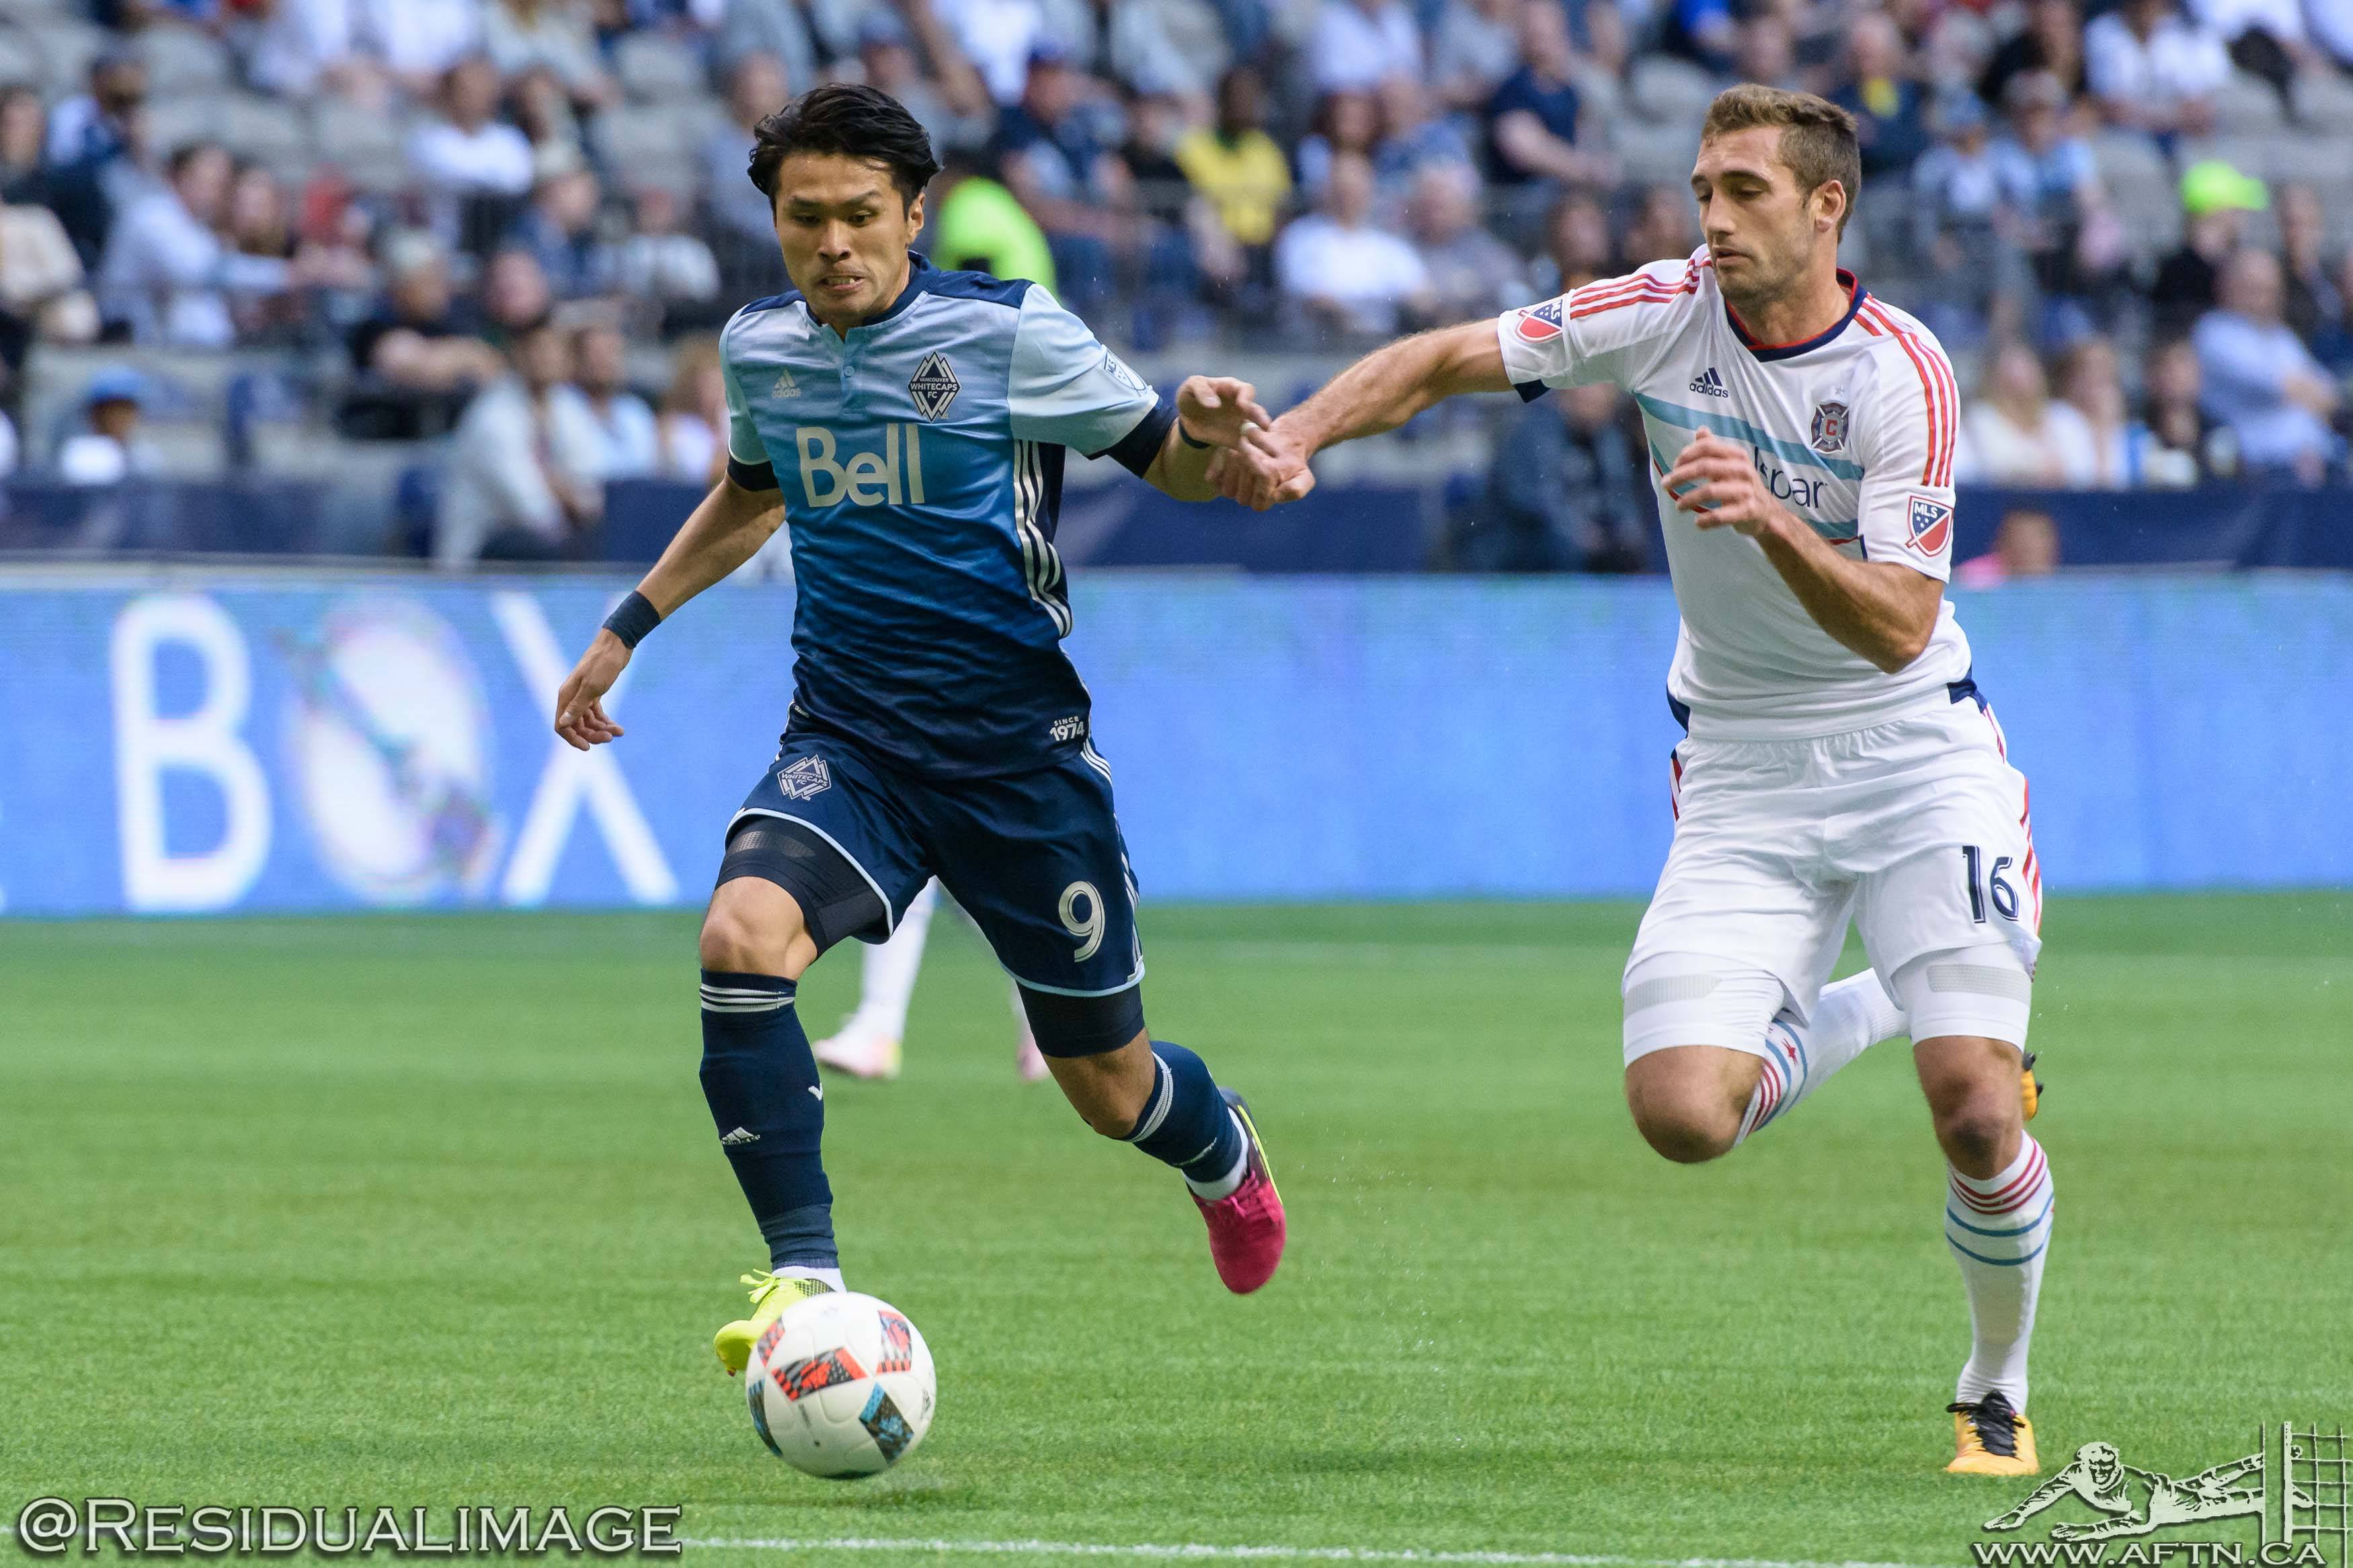 Vancouver Whitecaps v Chicago Fire - 11052016 (41)